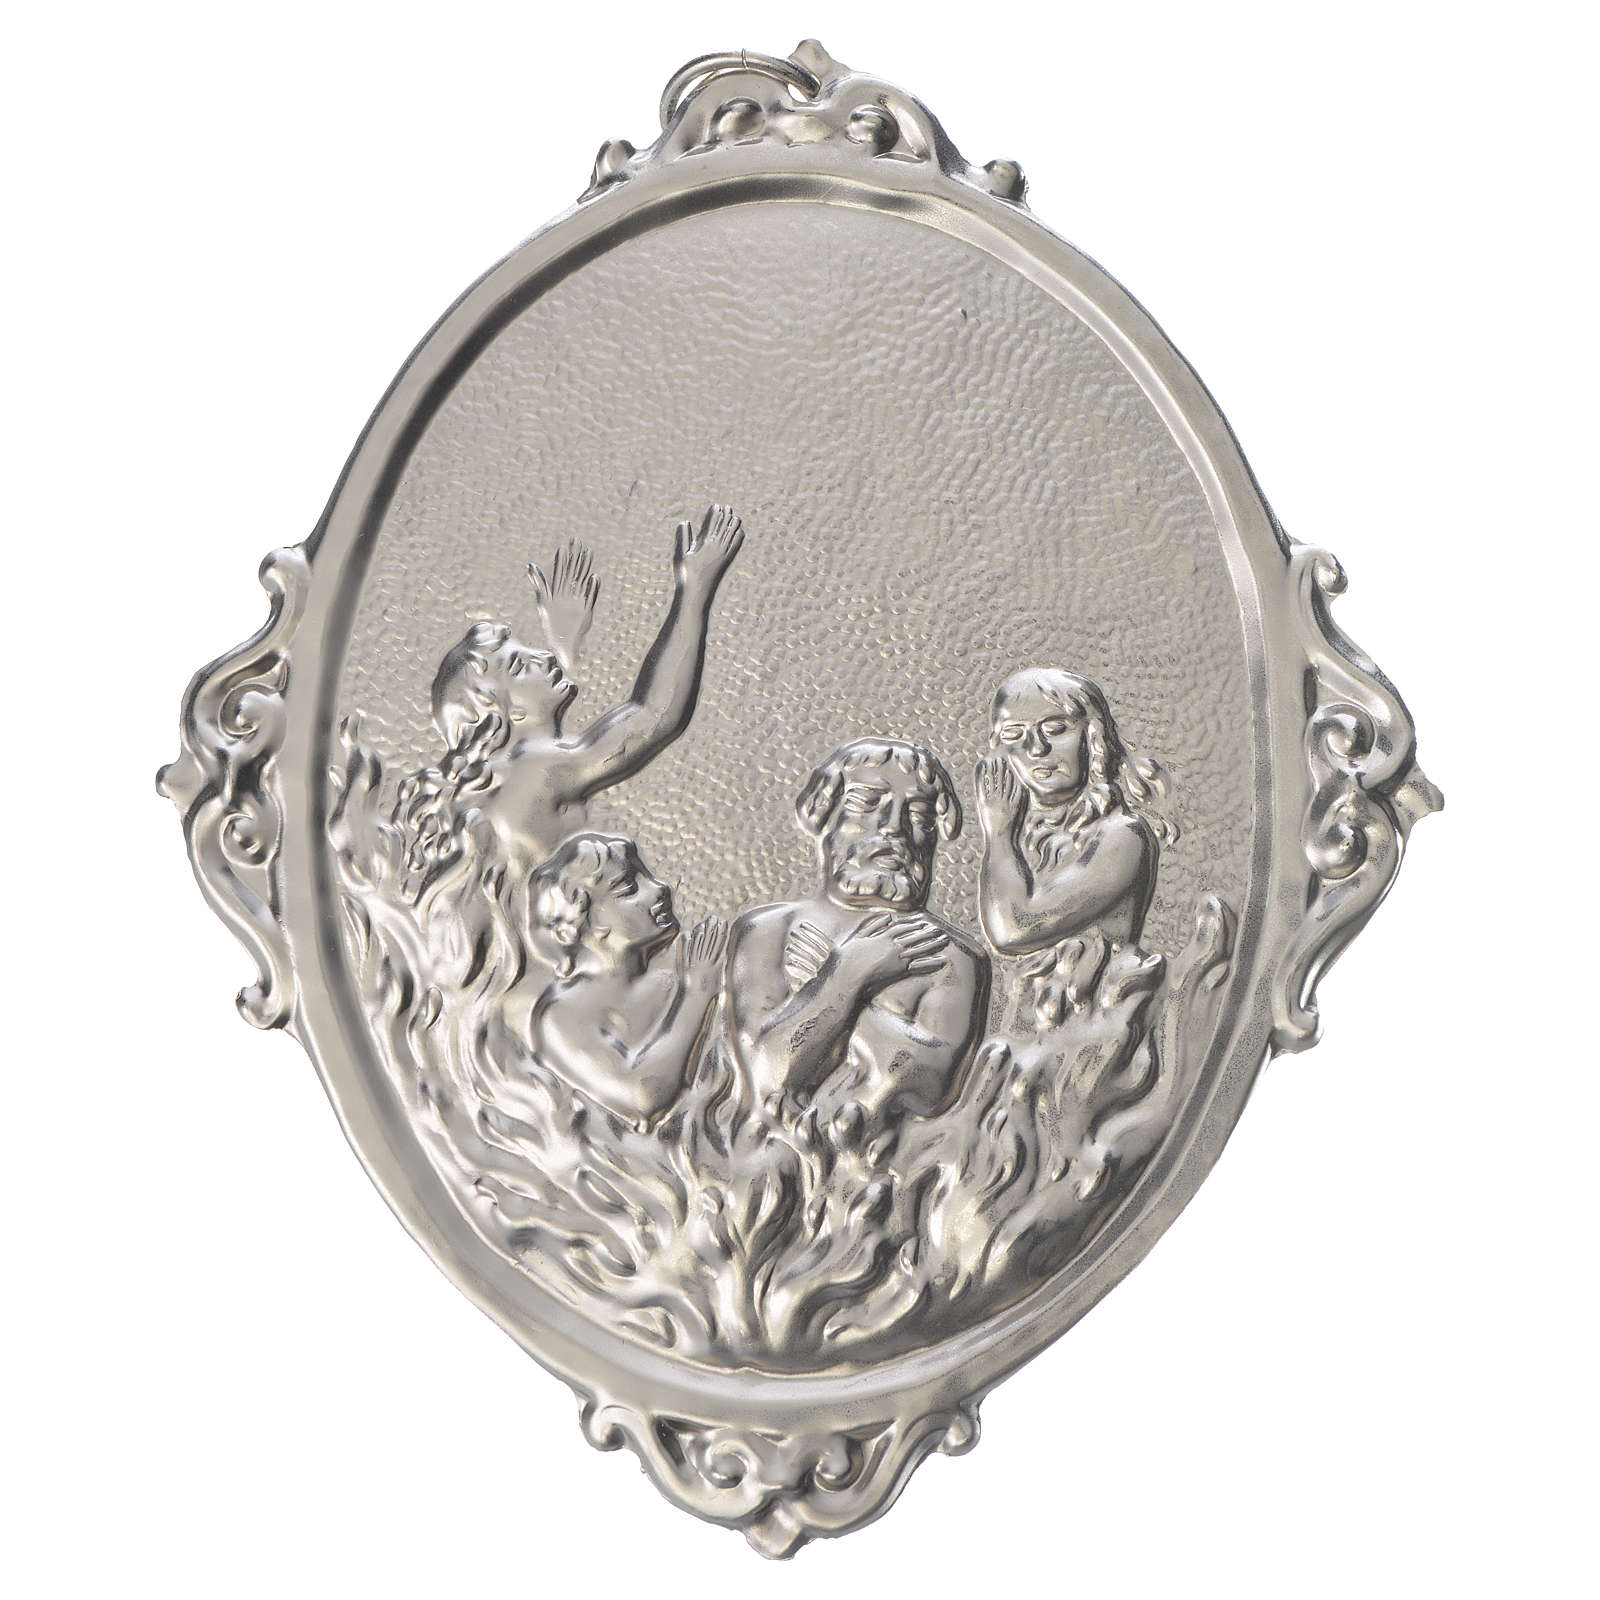 Confraternity Medal in metal, Souls in Purgatory 3